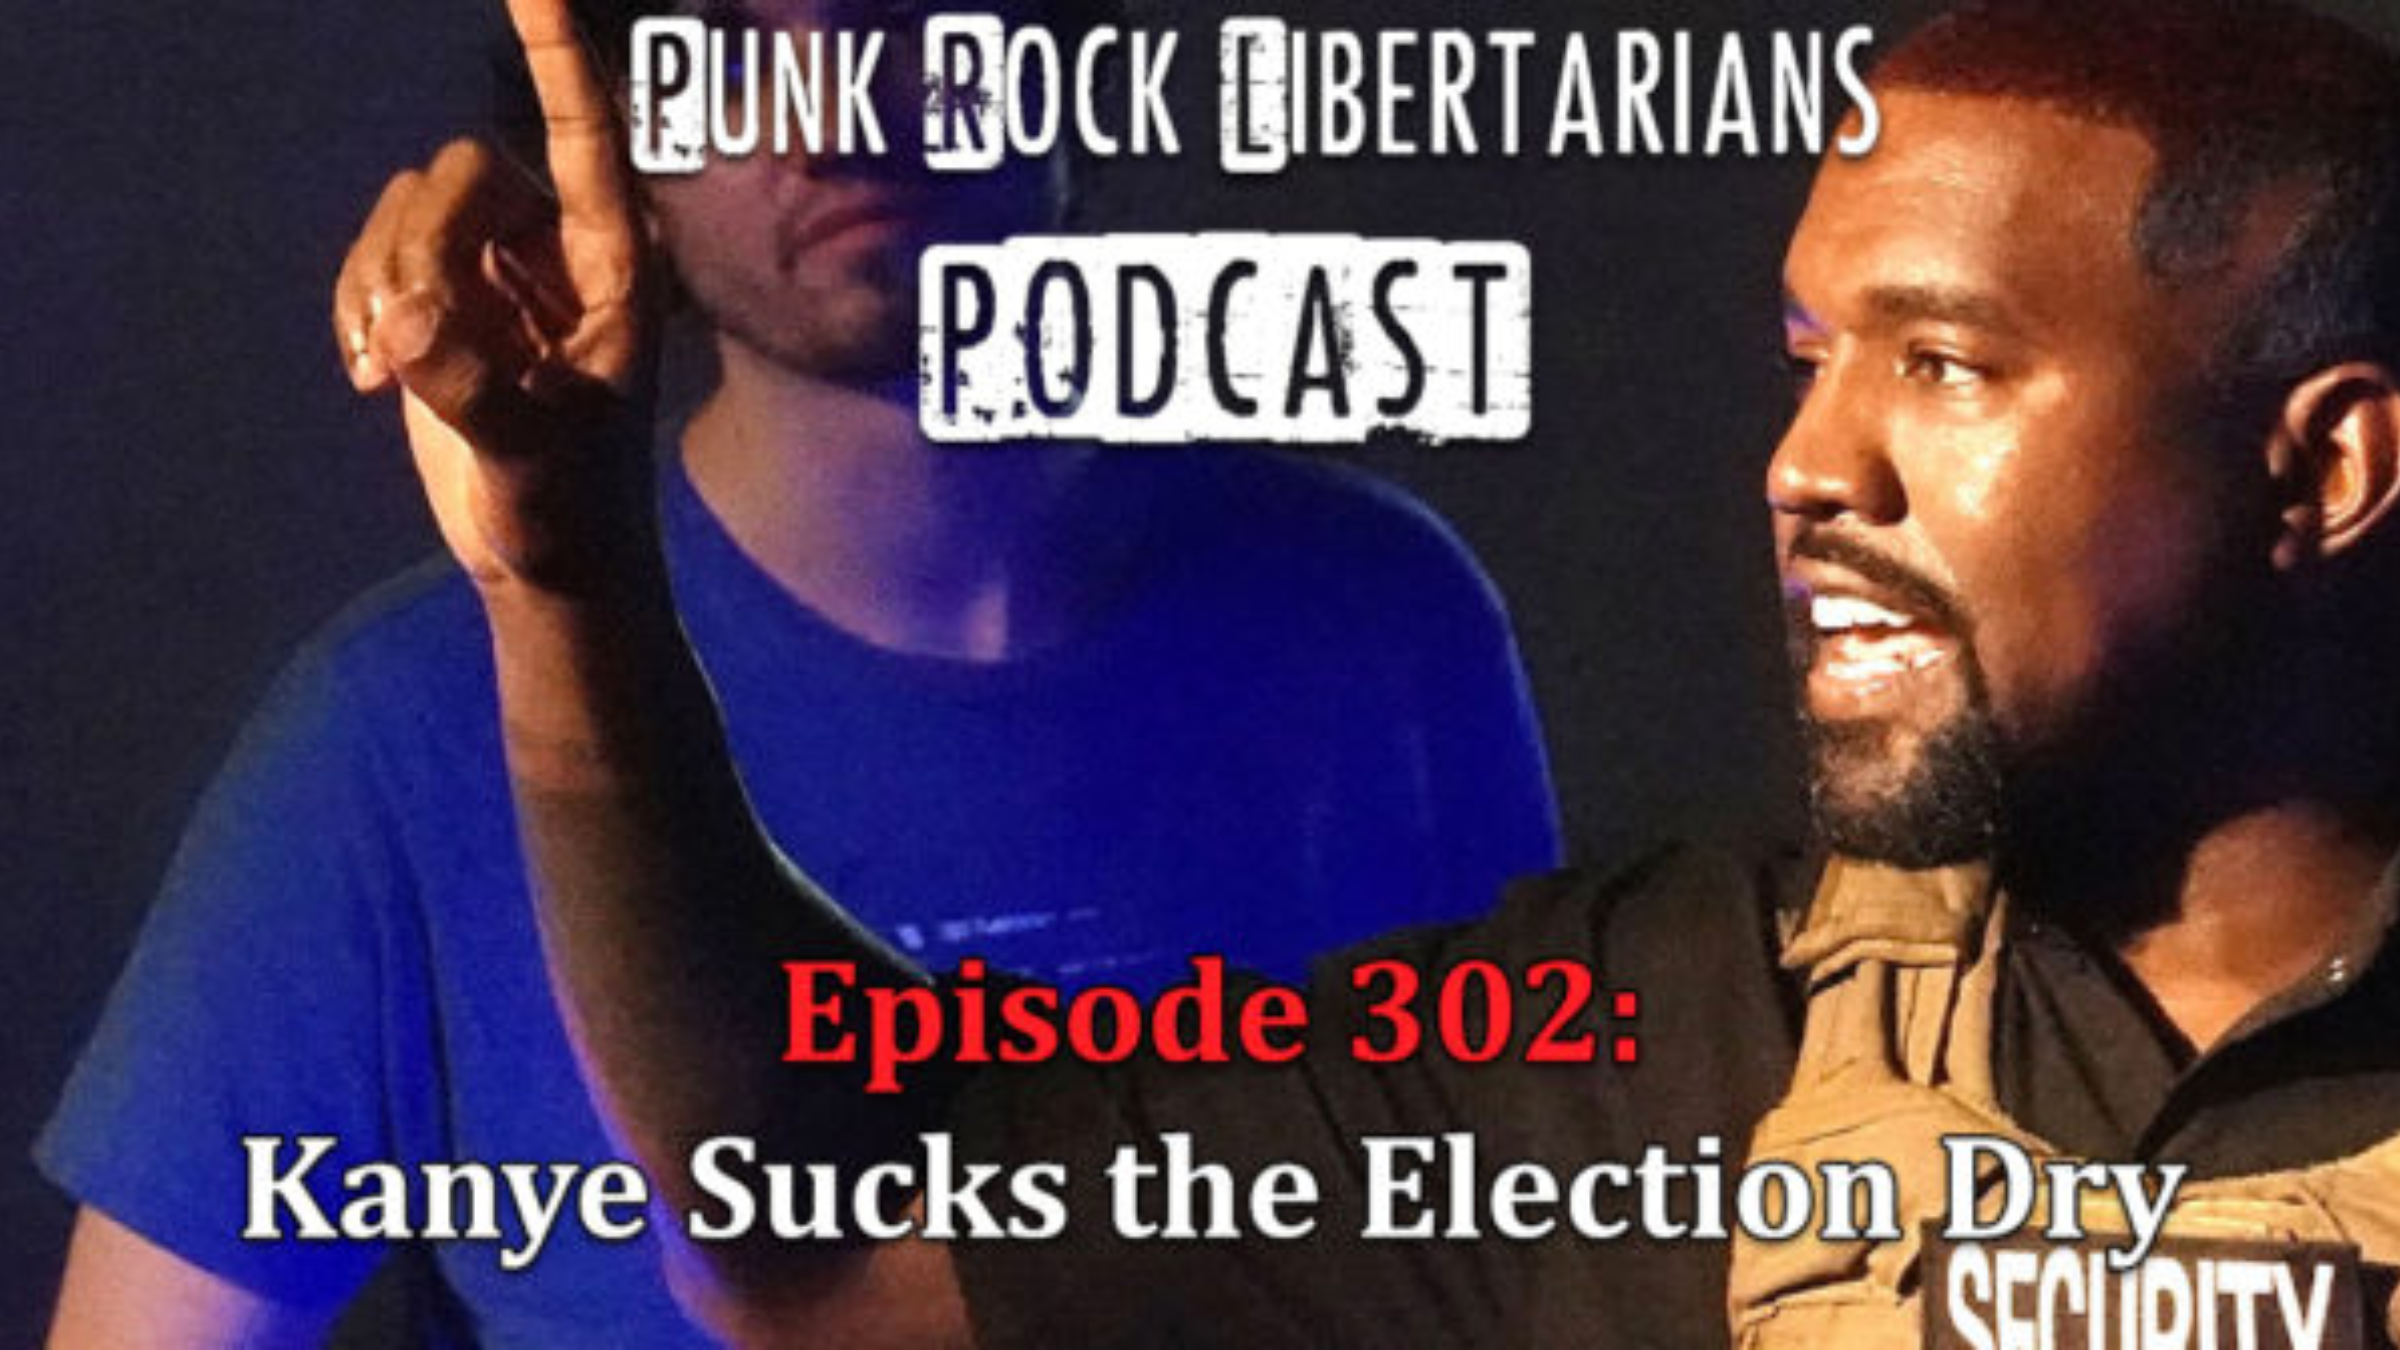 Nicky P Appears On Punk Rock Libertarians 302